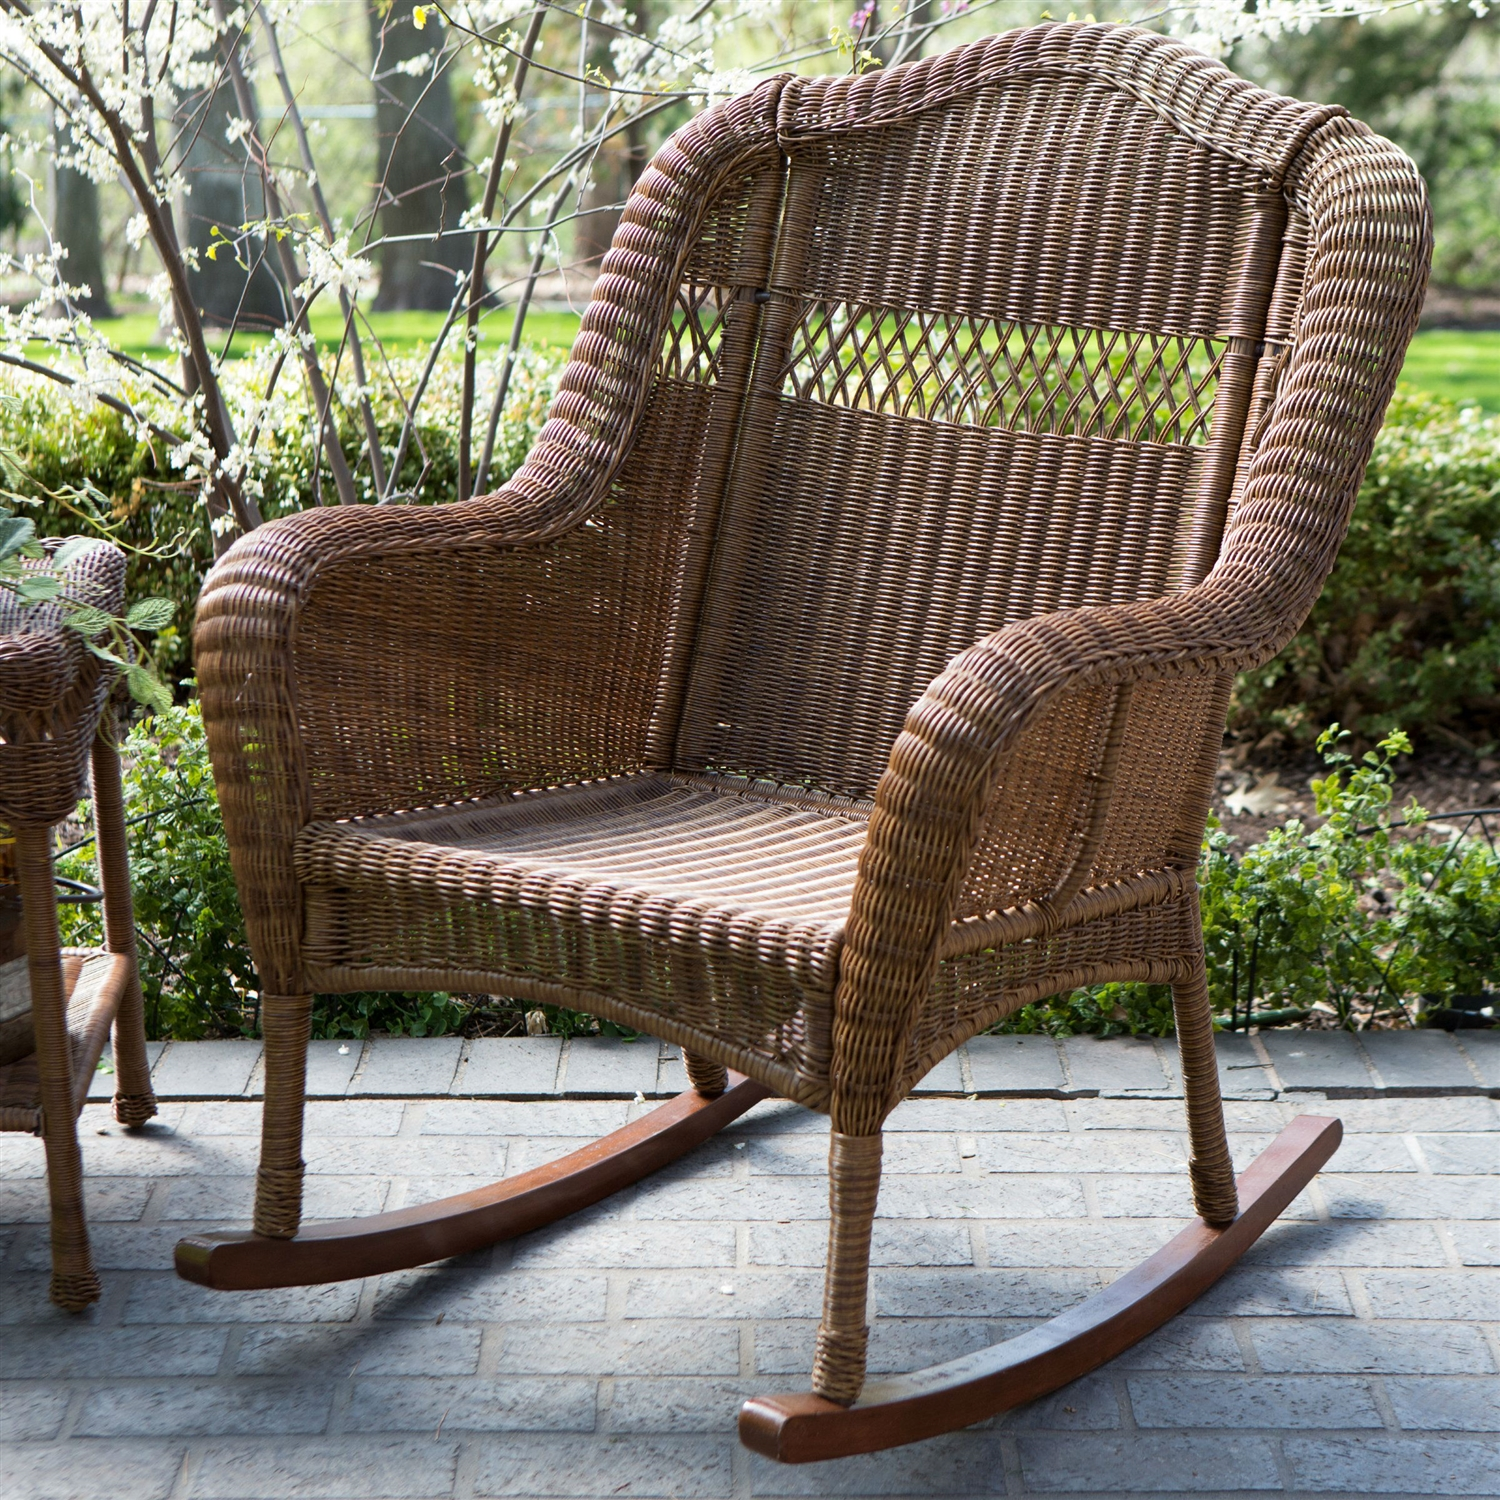 Patio Chairs Seating Options For